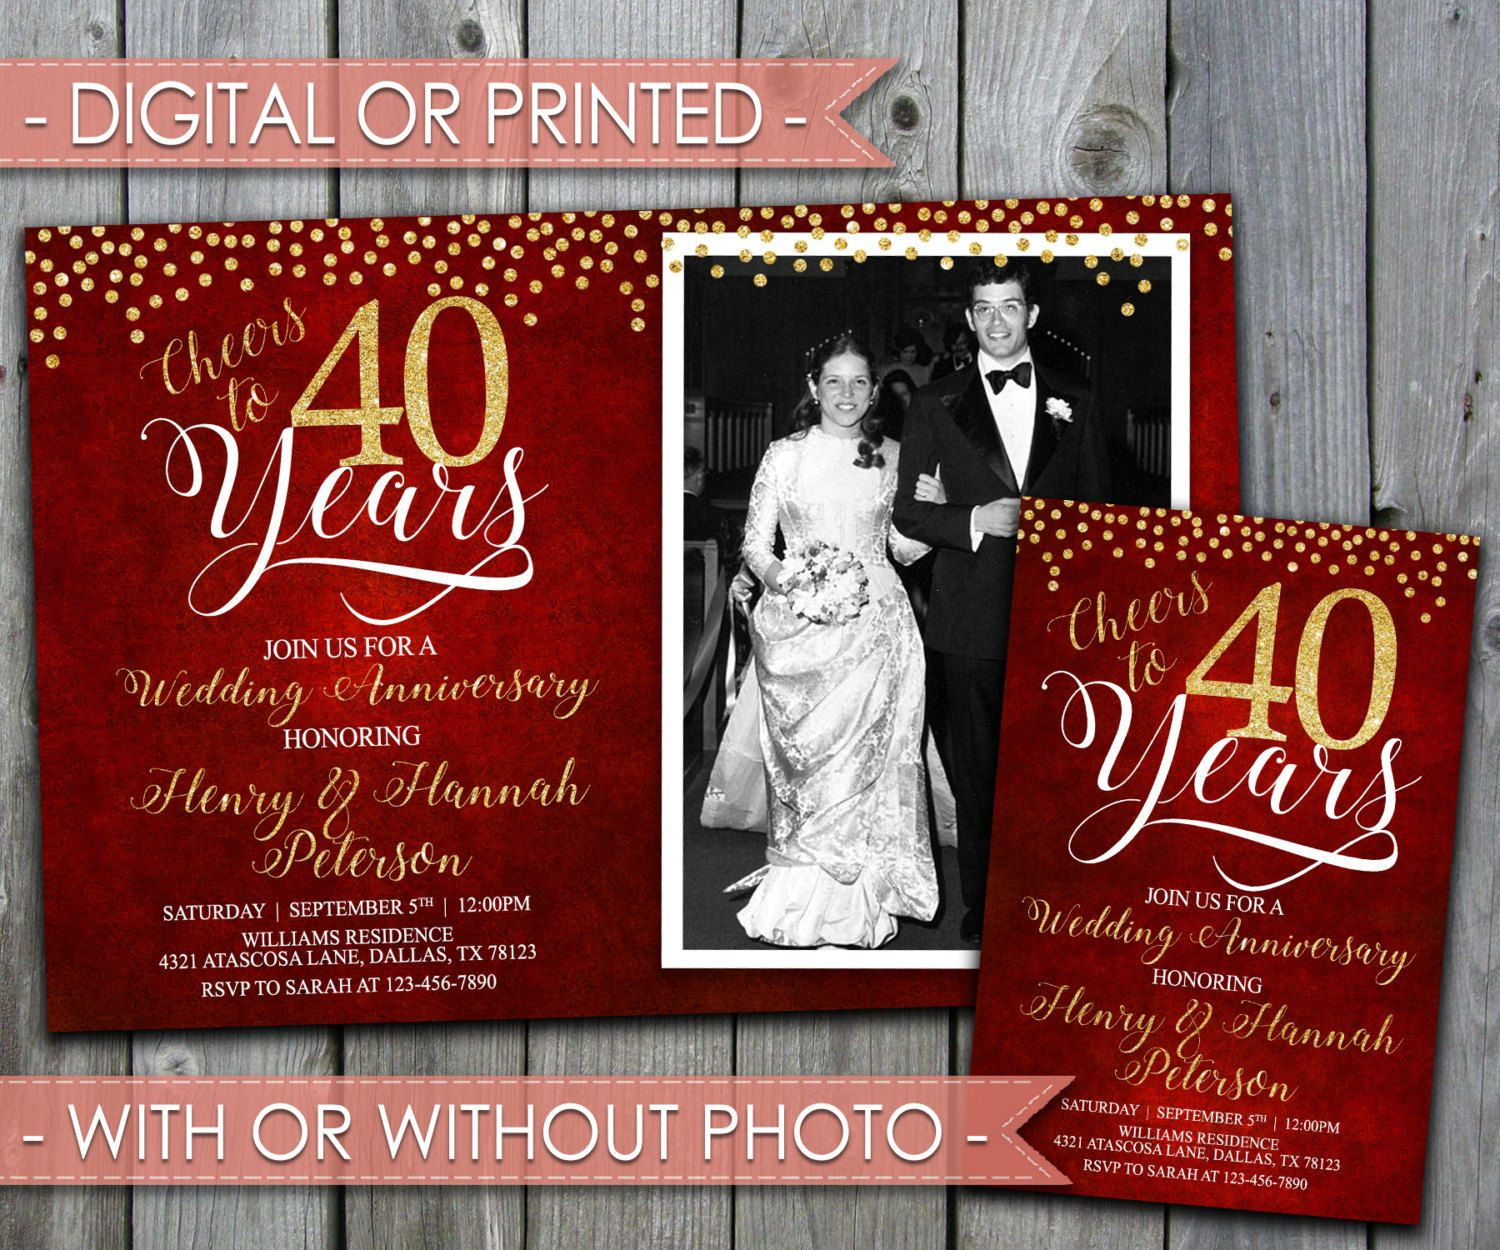 Th wedding anniversary invitation wedding anniversary invite